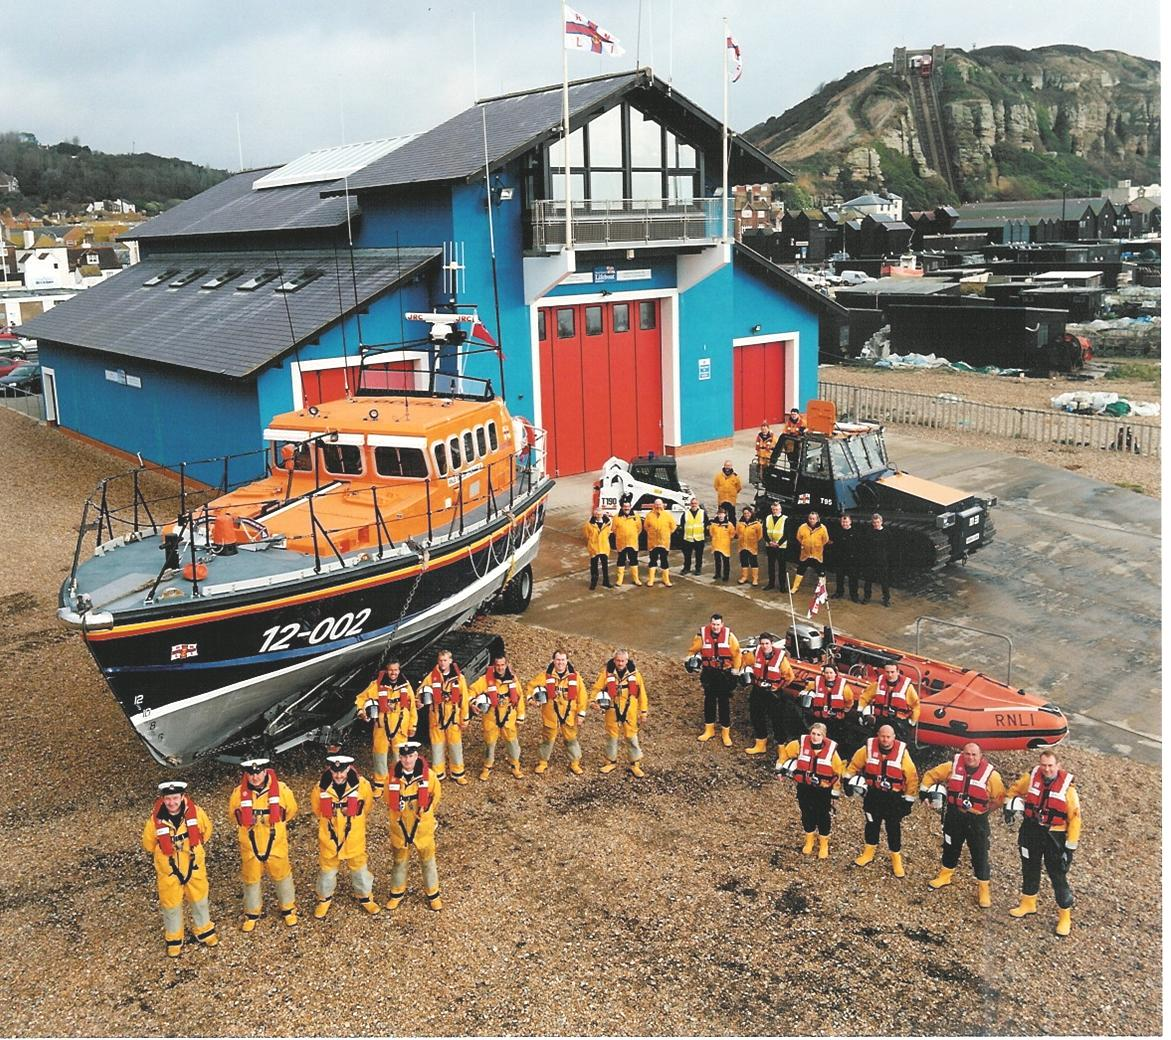 Open Day At Hastings Lifeboat Station 2017 Hastings Old